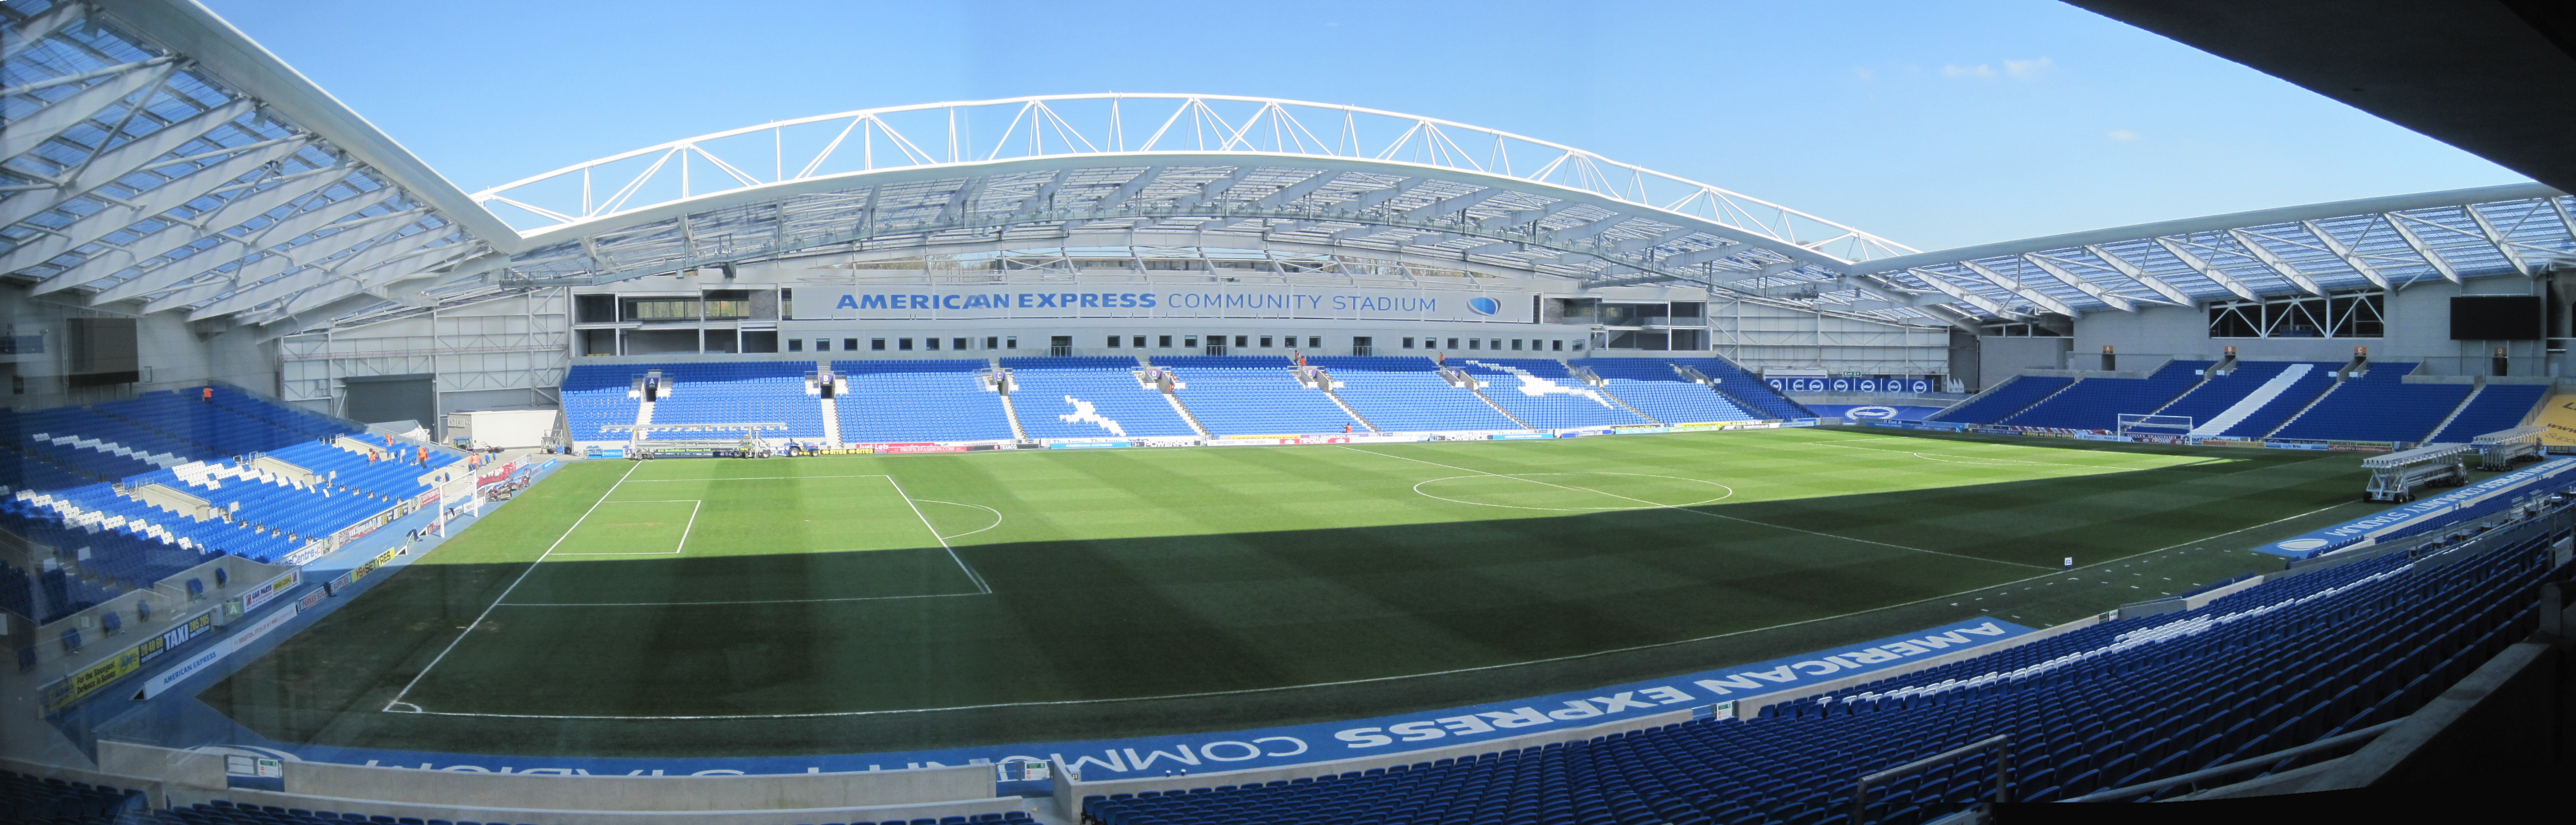 Description Amex Stadium Pitch panorama - geograph.org.uk - 2859086 ...: https://commons.wikimedia.org/wiki/file:amex_stadium_pitch_panorama...